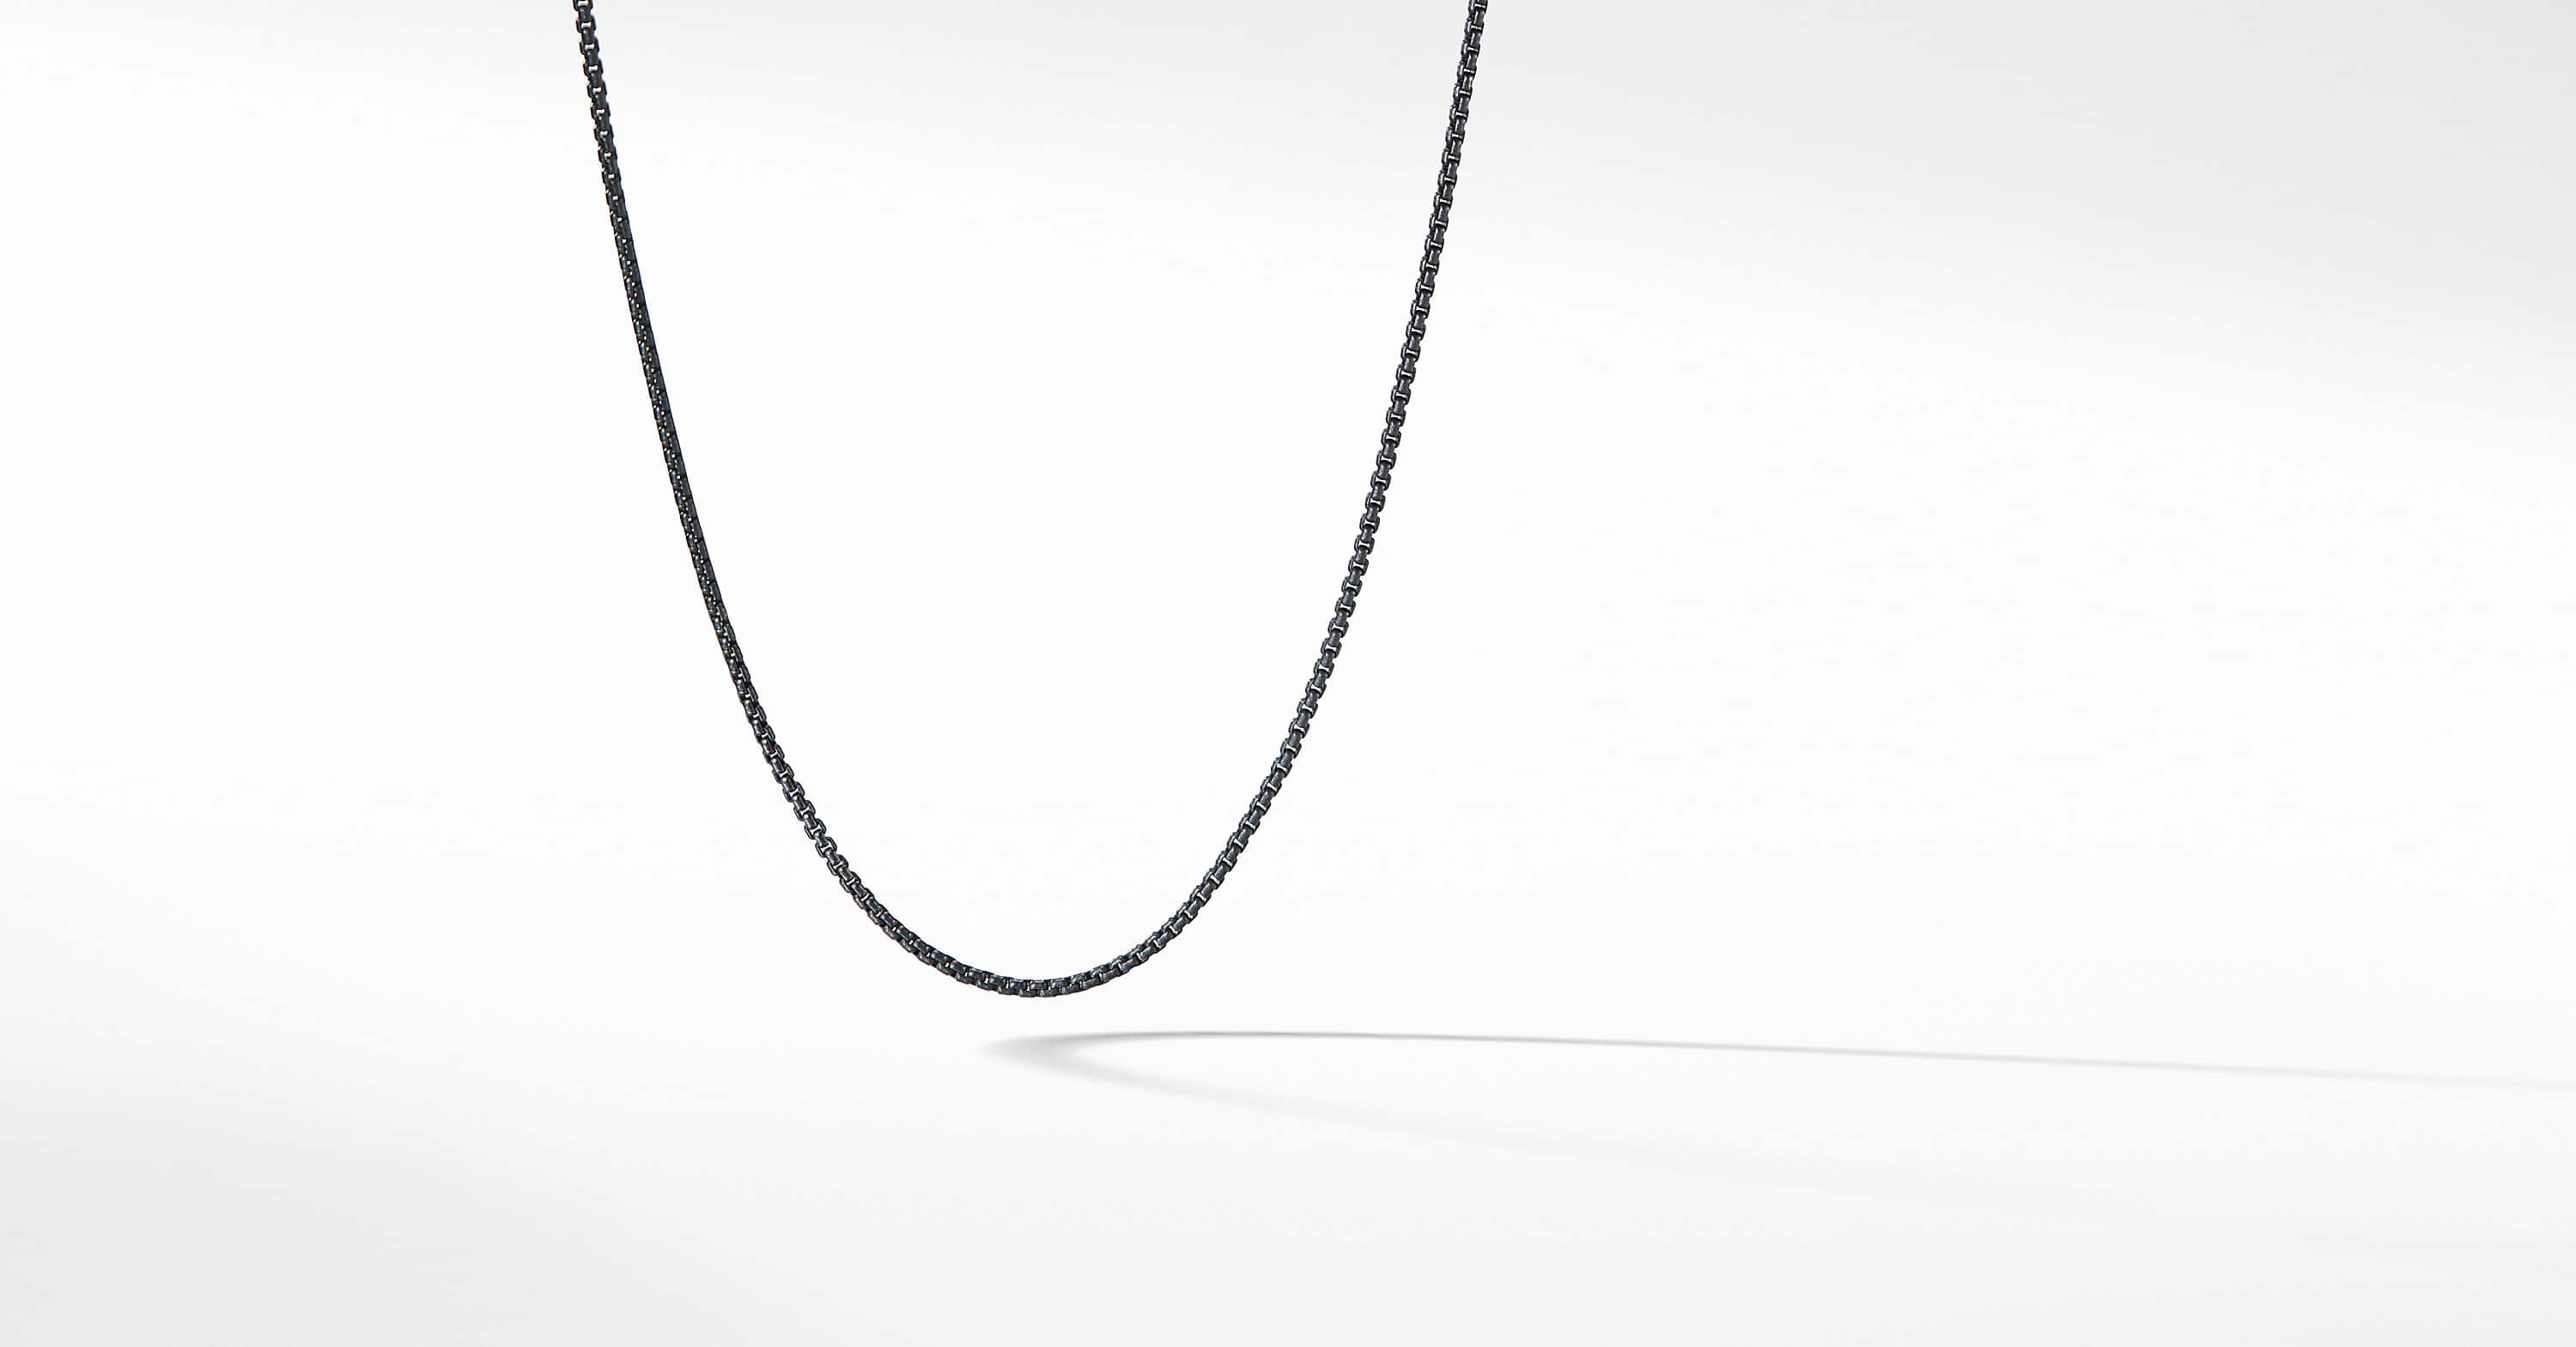 Baby Box Chain Necklace, 1.7mm